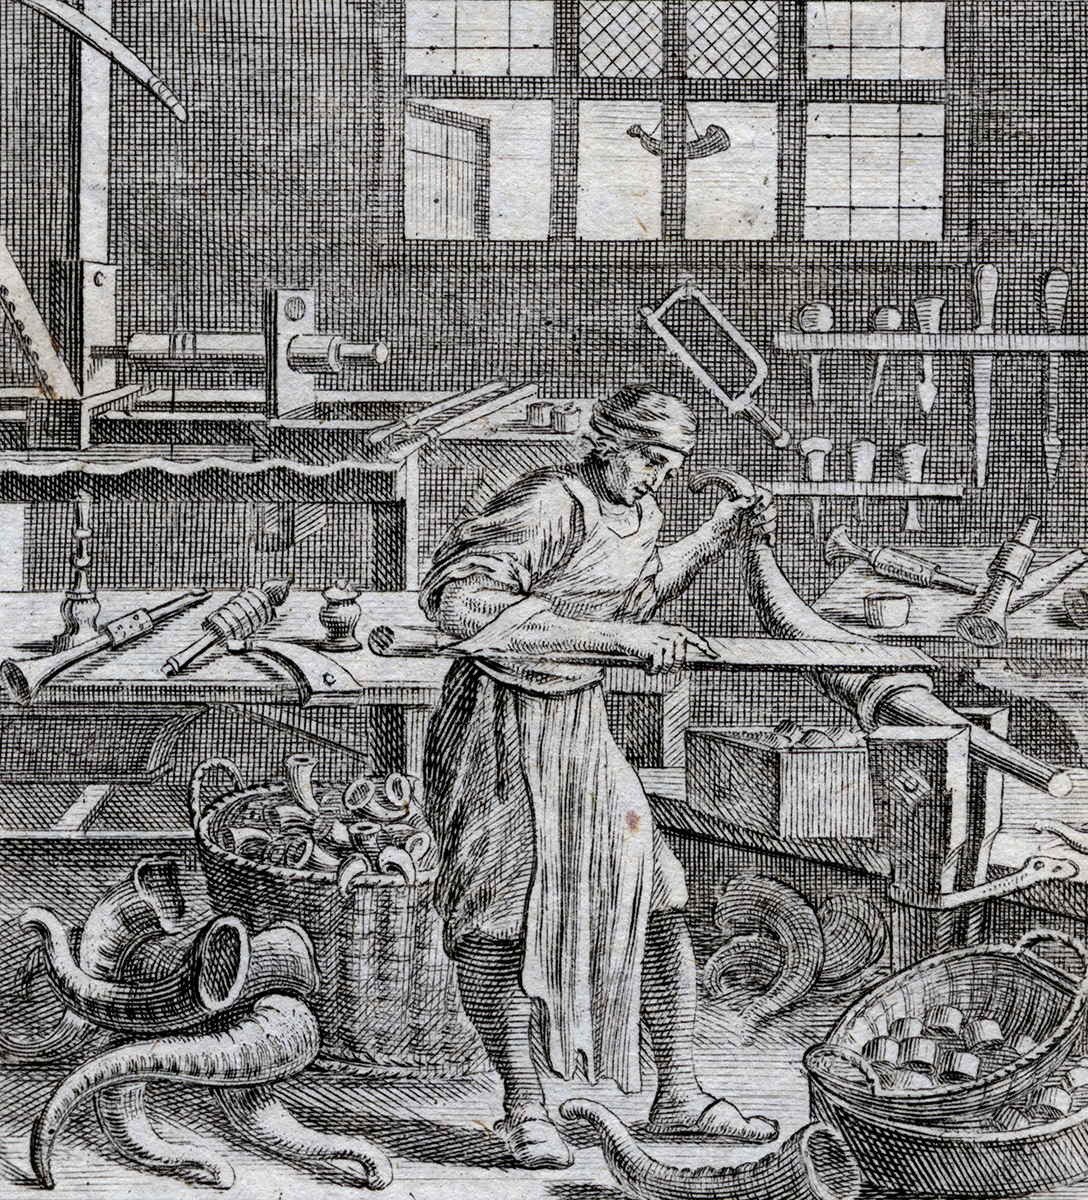 Horners used vast quantities of horns to produce a wide variety of finished goods. This Germanic engraving from the late 17th century illustrates tools and techniques that would have been familiar to many American craftsmen. Private collection.